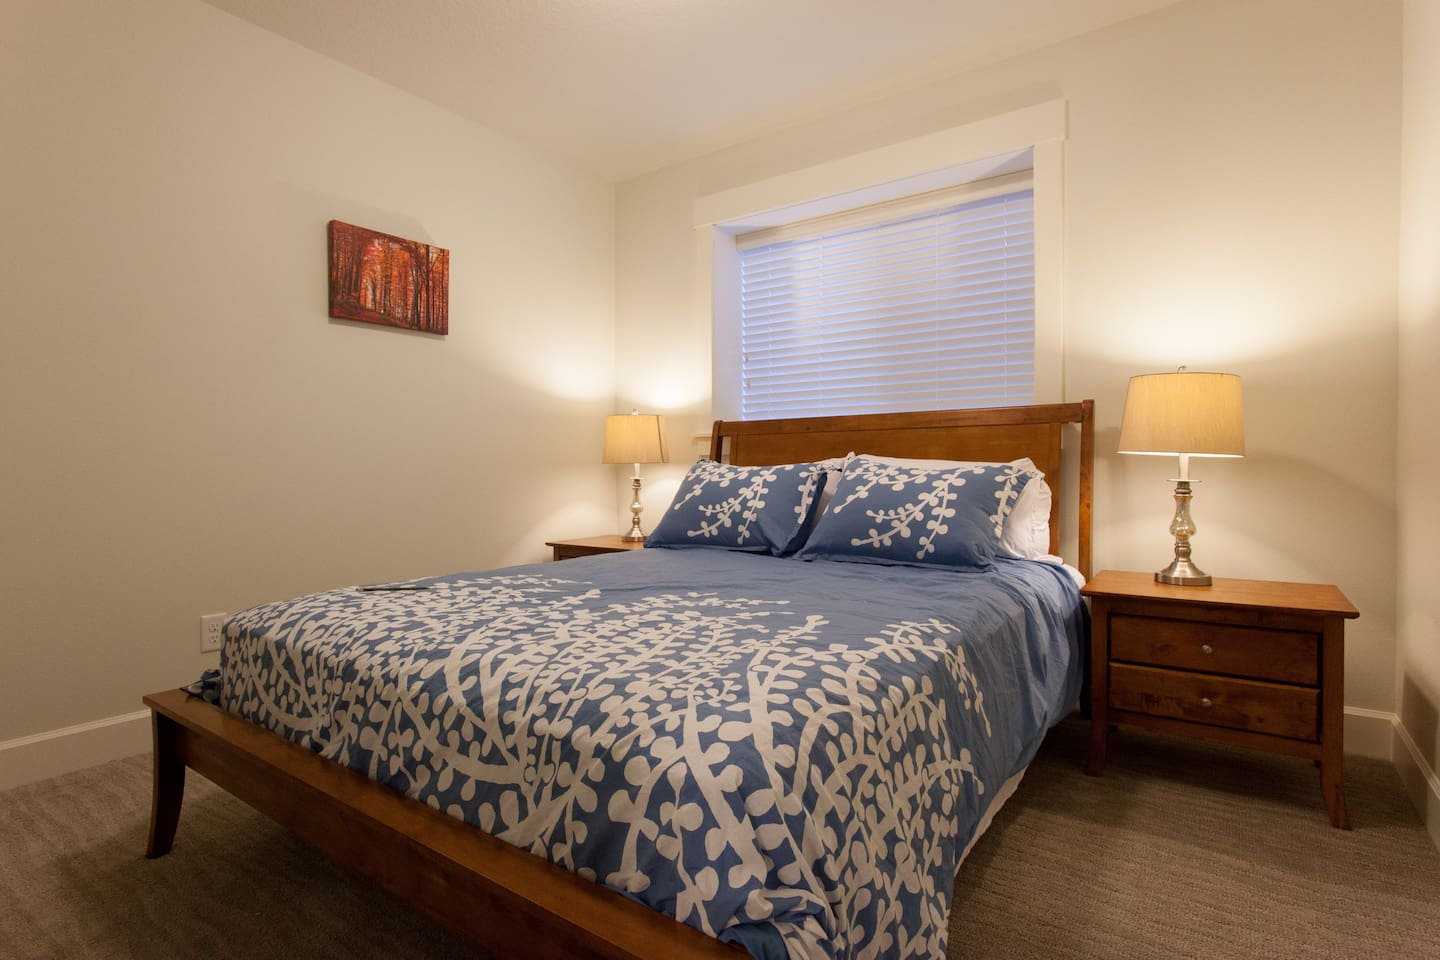 Bedroom with queen sized bed, soft microfiber sheets, plush pillows, large closet, 2 night stands